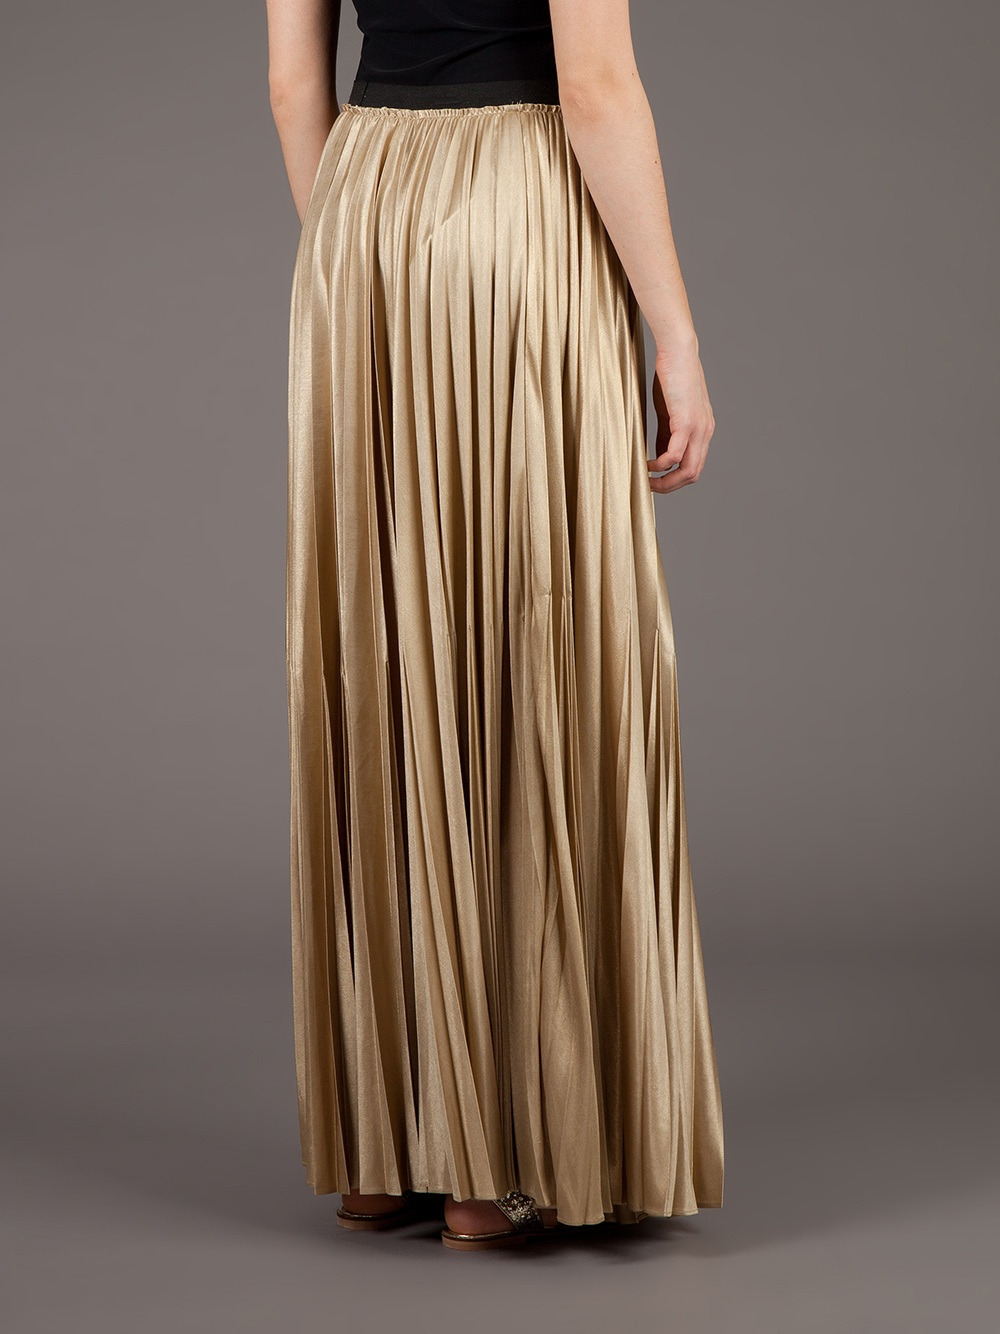 Lyst Enza Costa Pleated Maxi Skirt In Metallic